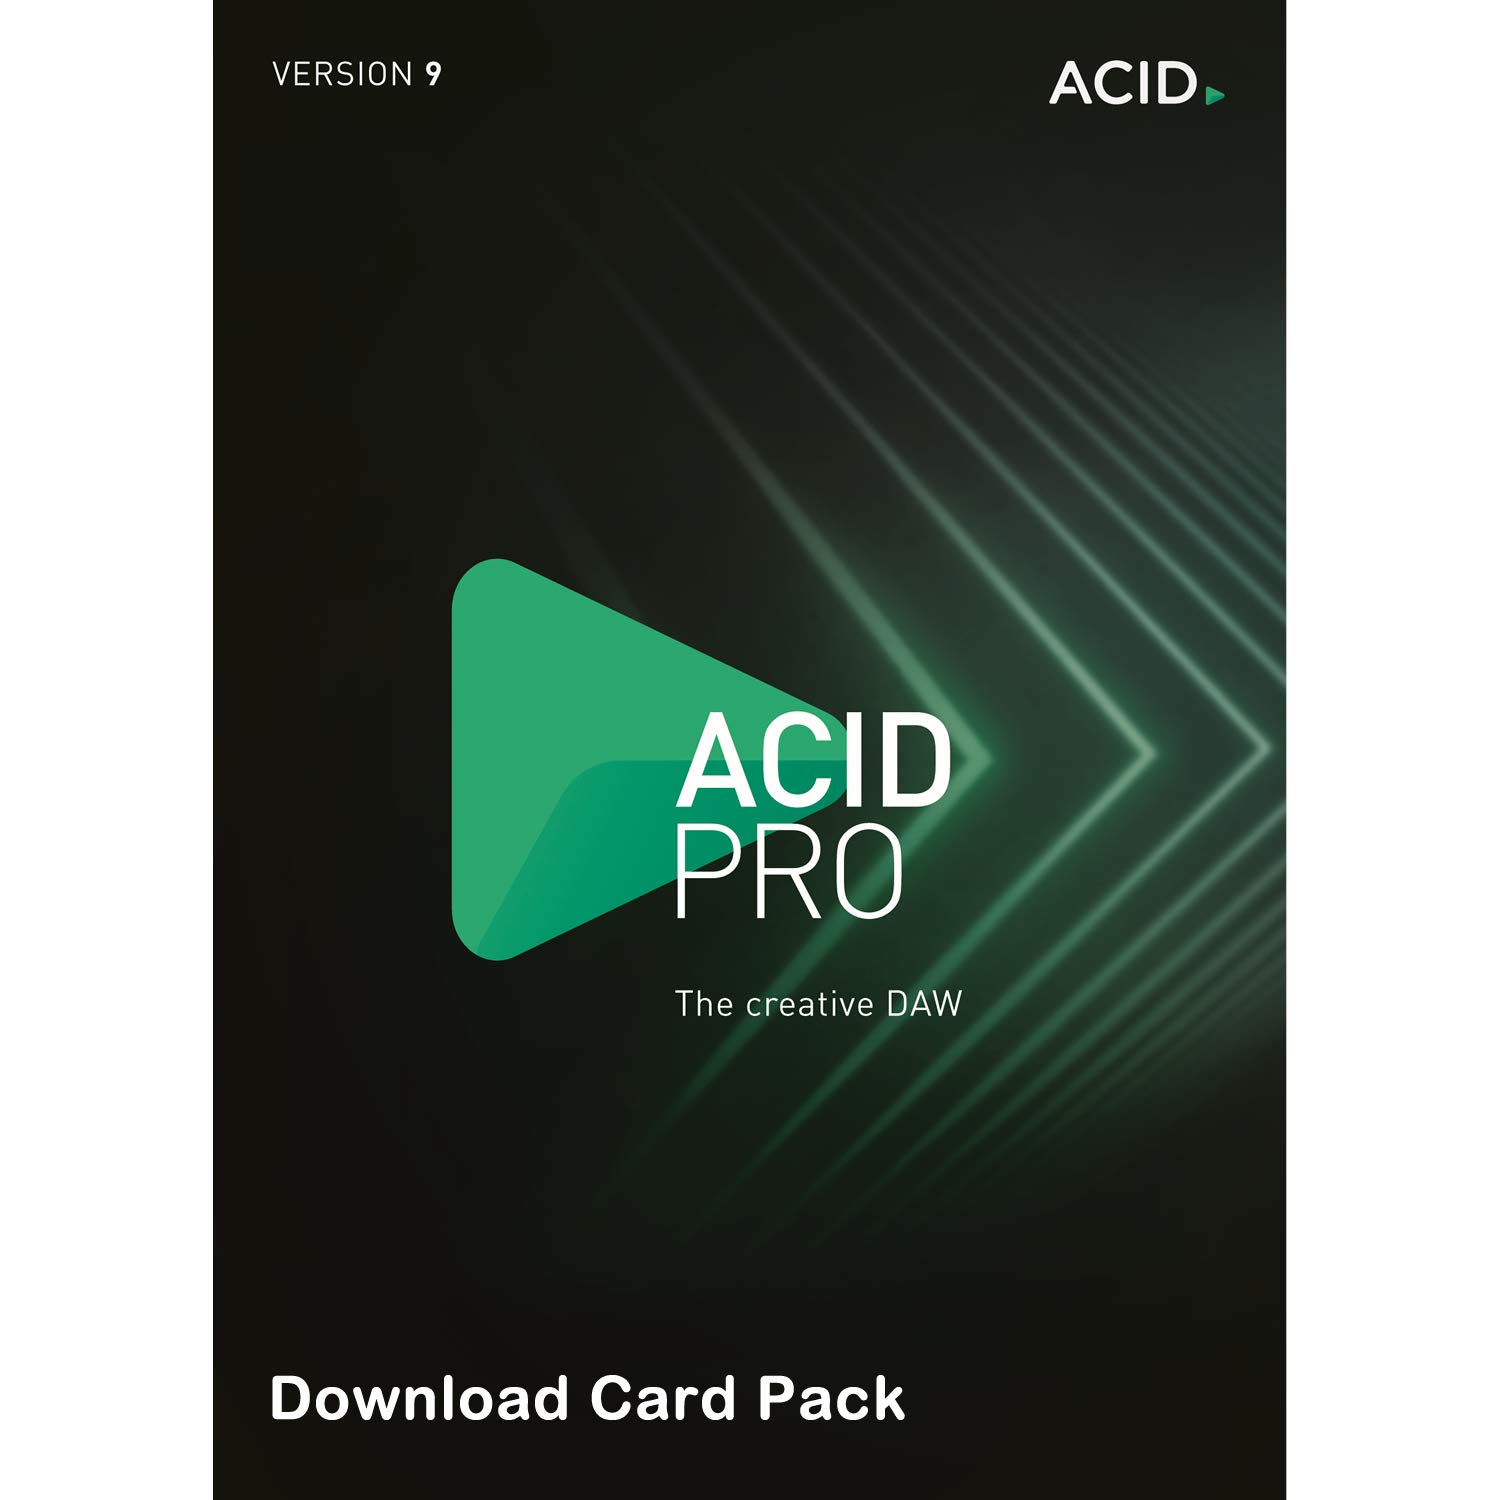 MAGIX Acid Pro 9 [Download Card] - Loop-Based Music Production, Powerful Multitrack Recording, Creative DAW